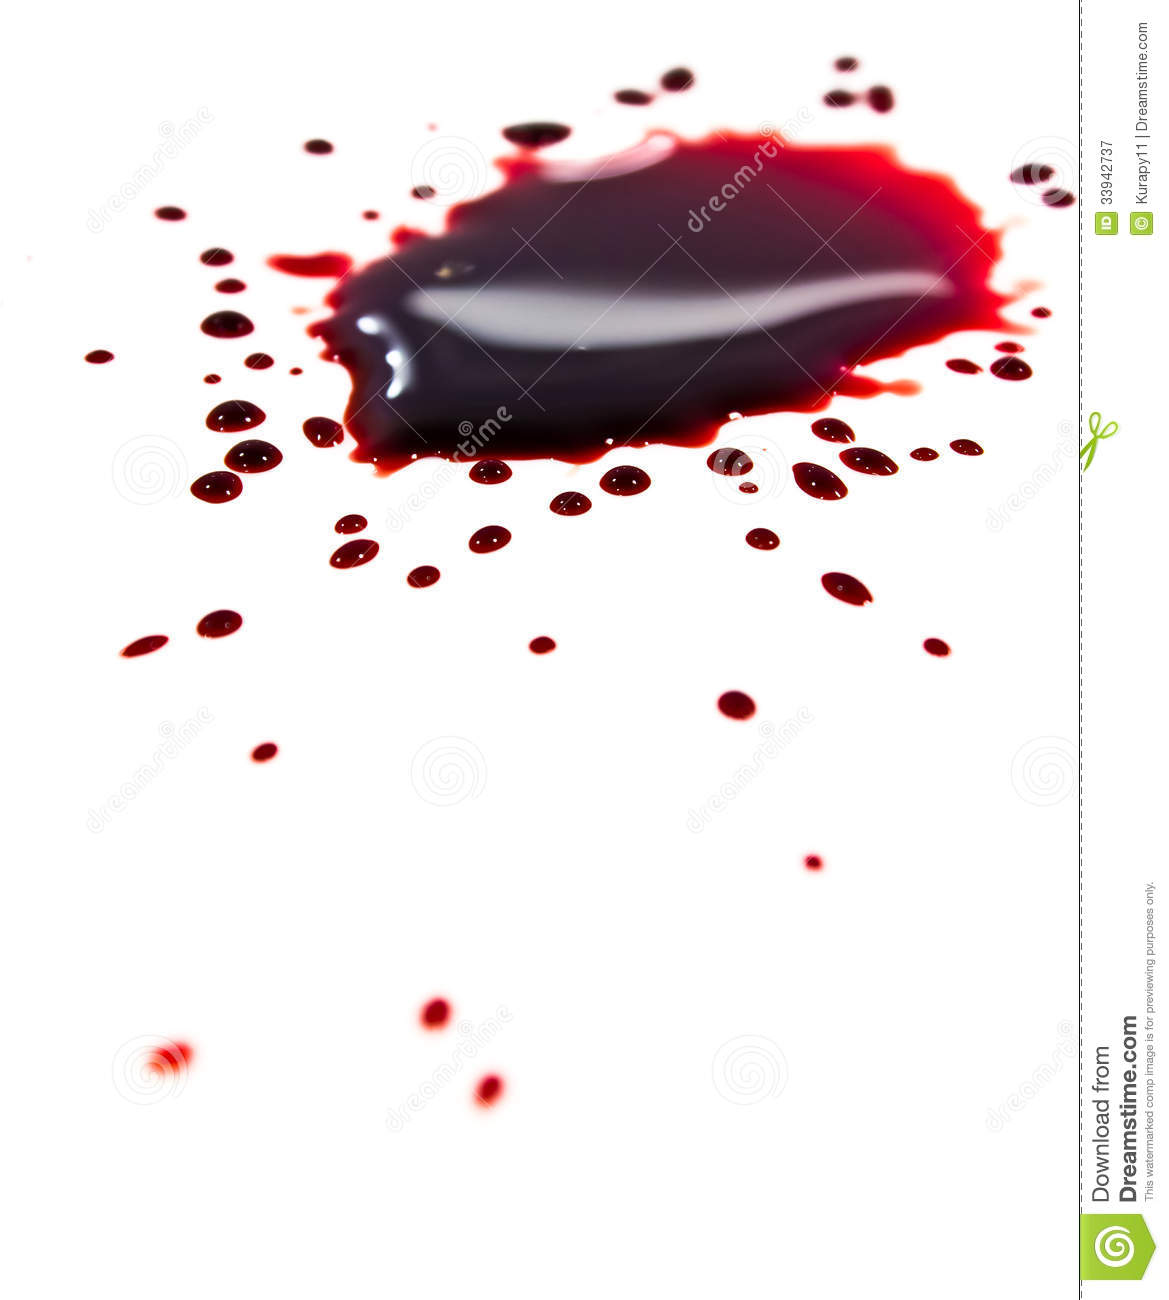 blood stains puddle stock image image of grungy